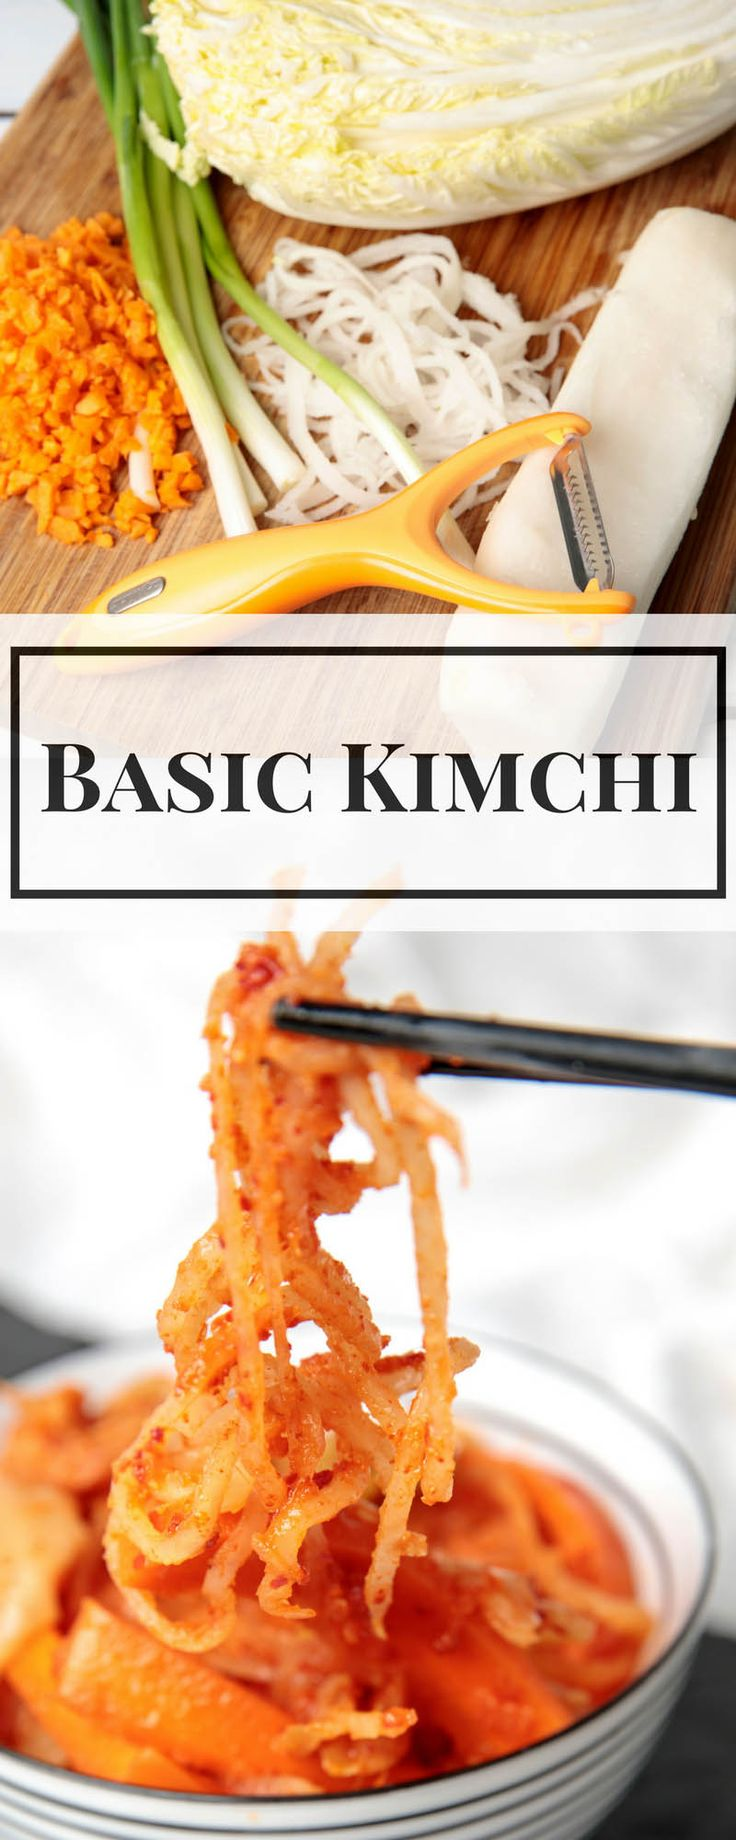 Easy Homemade Kimchi My basic Kimchi recipe makes producing your own fermented foods simple. Kimchi is ideal for maintaining good gut bacteria diversity. Thermomix or knife method included. DELICIOUS